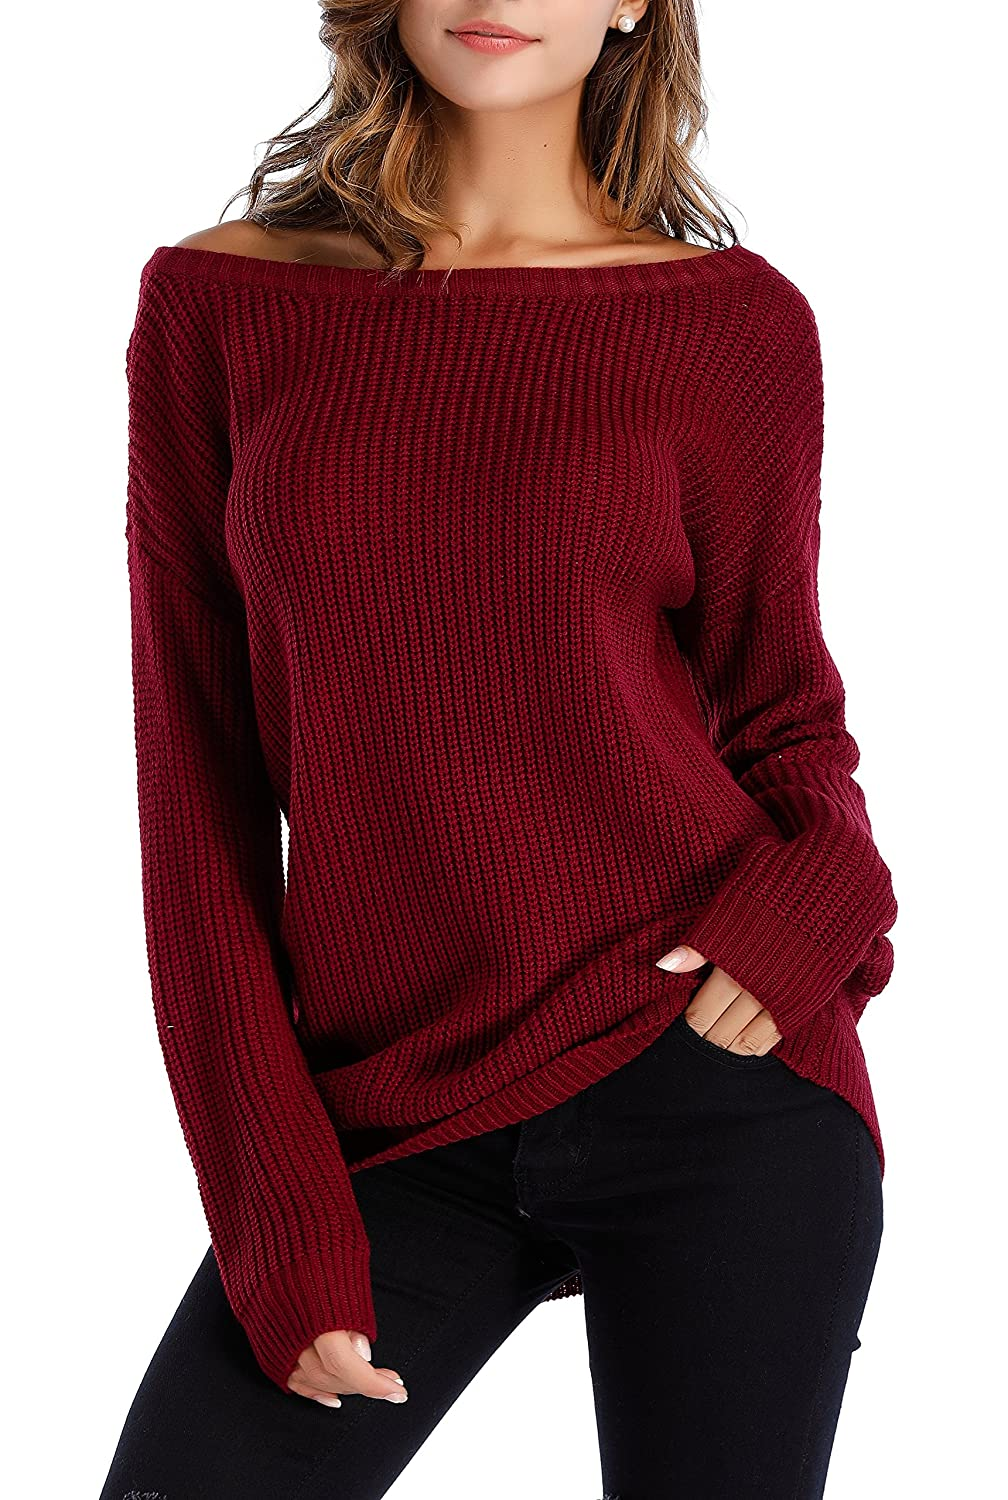 c22c0e8e5 Sarin Mathews Womens Sexy Off the Shoulder Slouchy Oversized Pullover  Sweaters. It is a pullover and very flattering